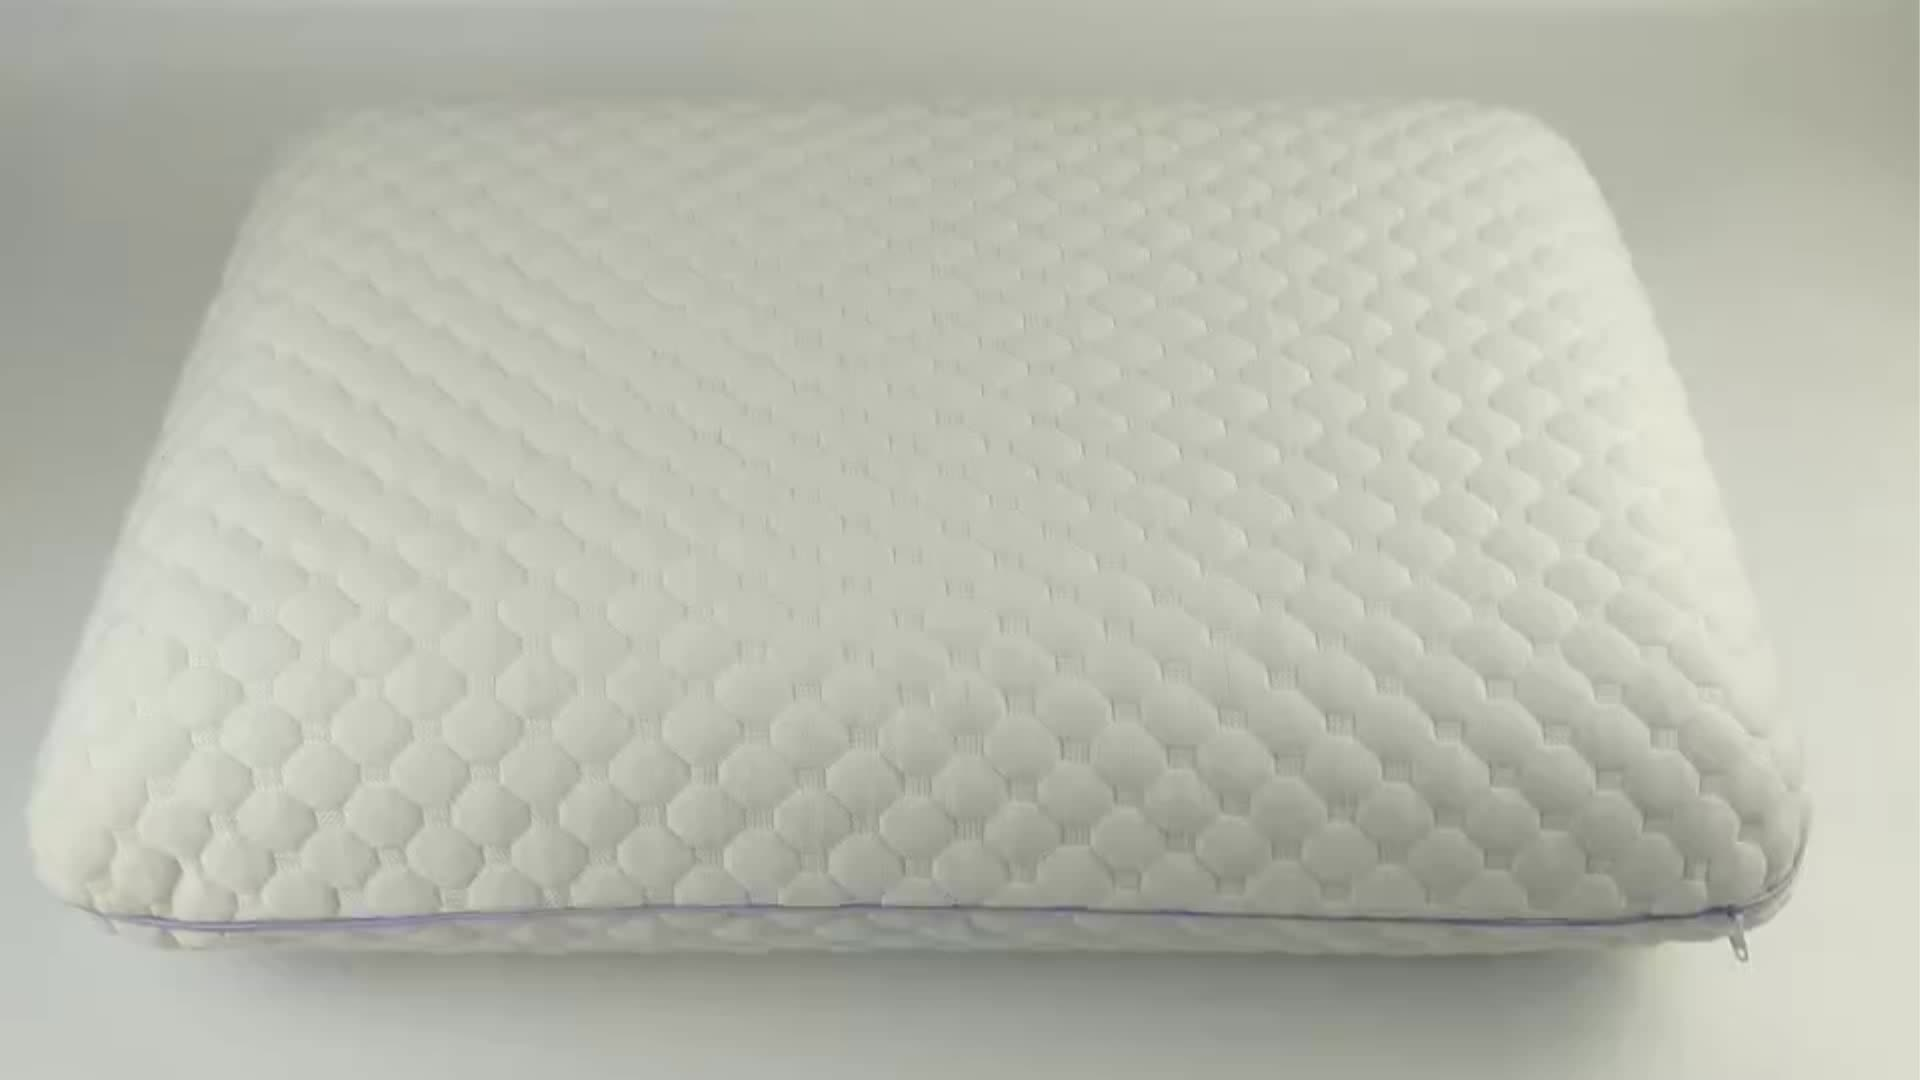 Dual Side Covers Memory Foam Bed Pillow with Gel-infused For Your Comfortable and Better Sleeping